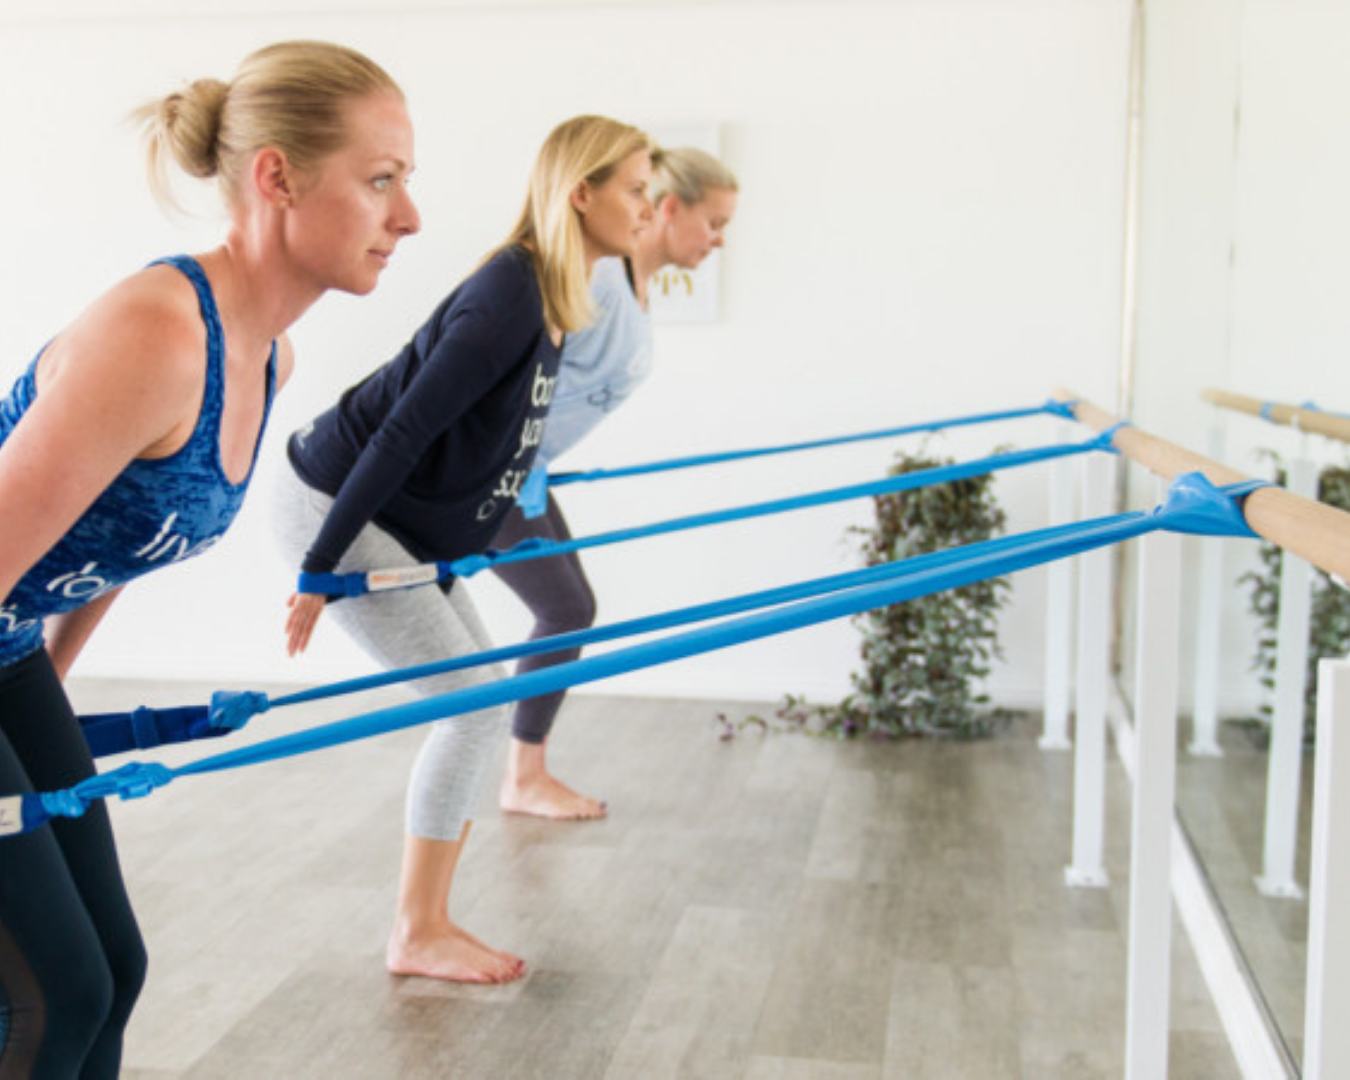 3 women practicing barre with resistance bands